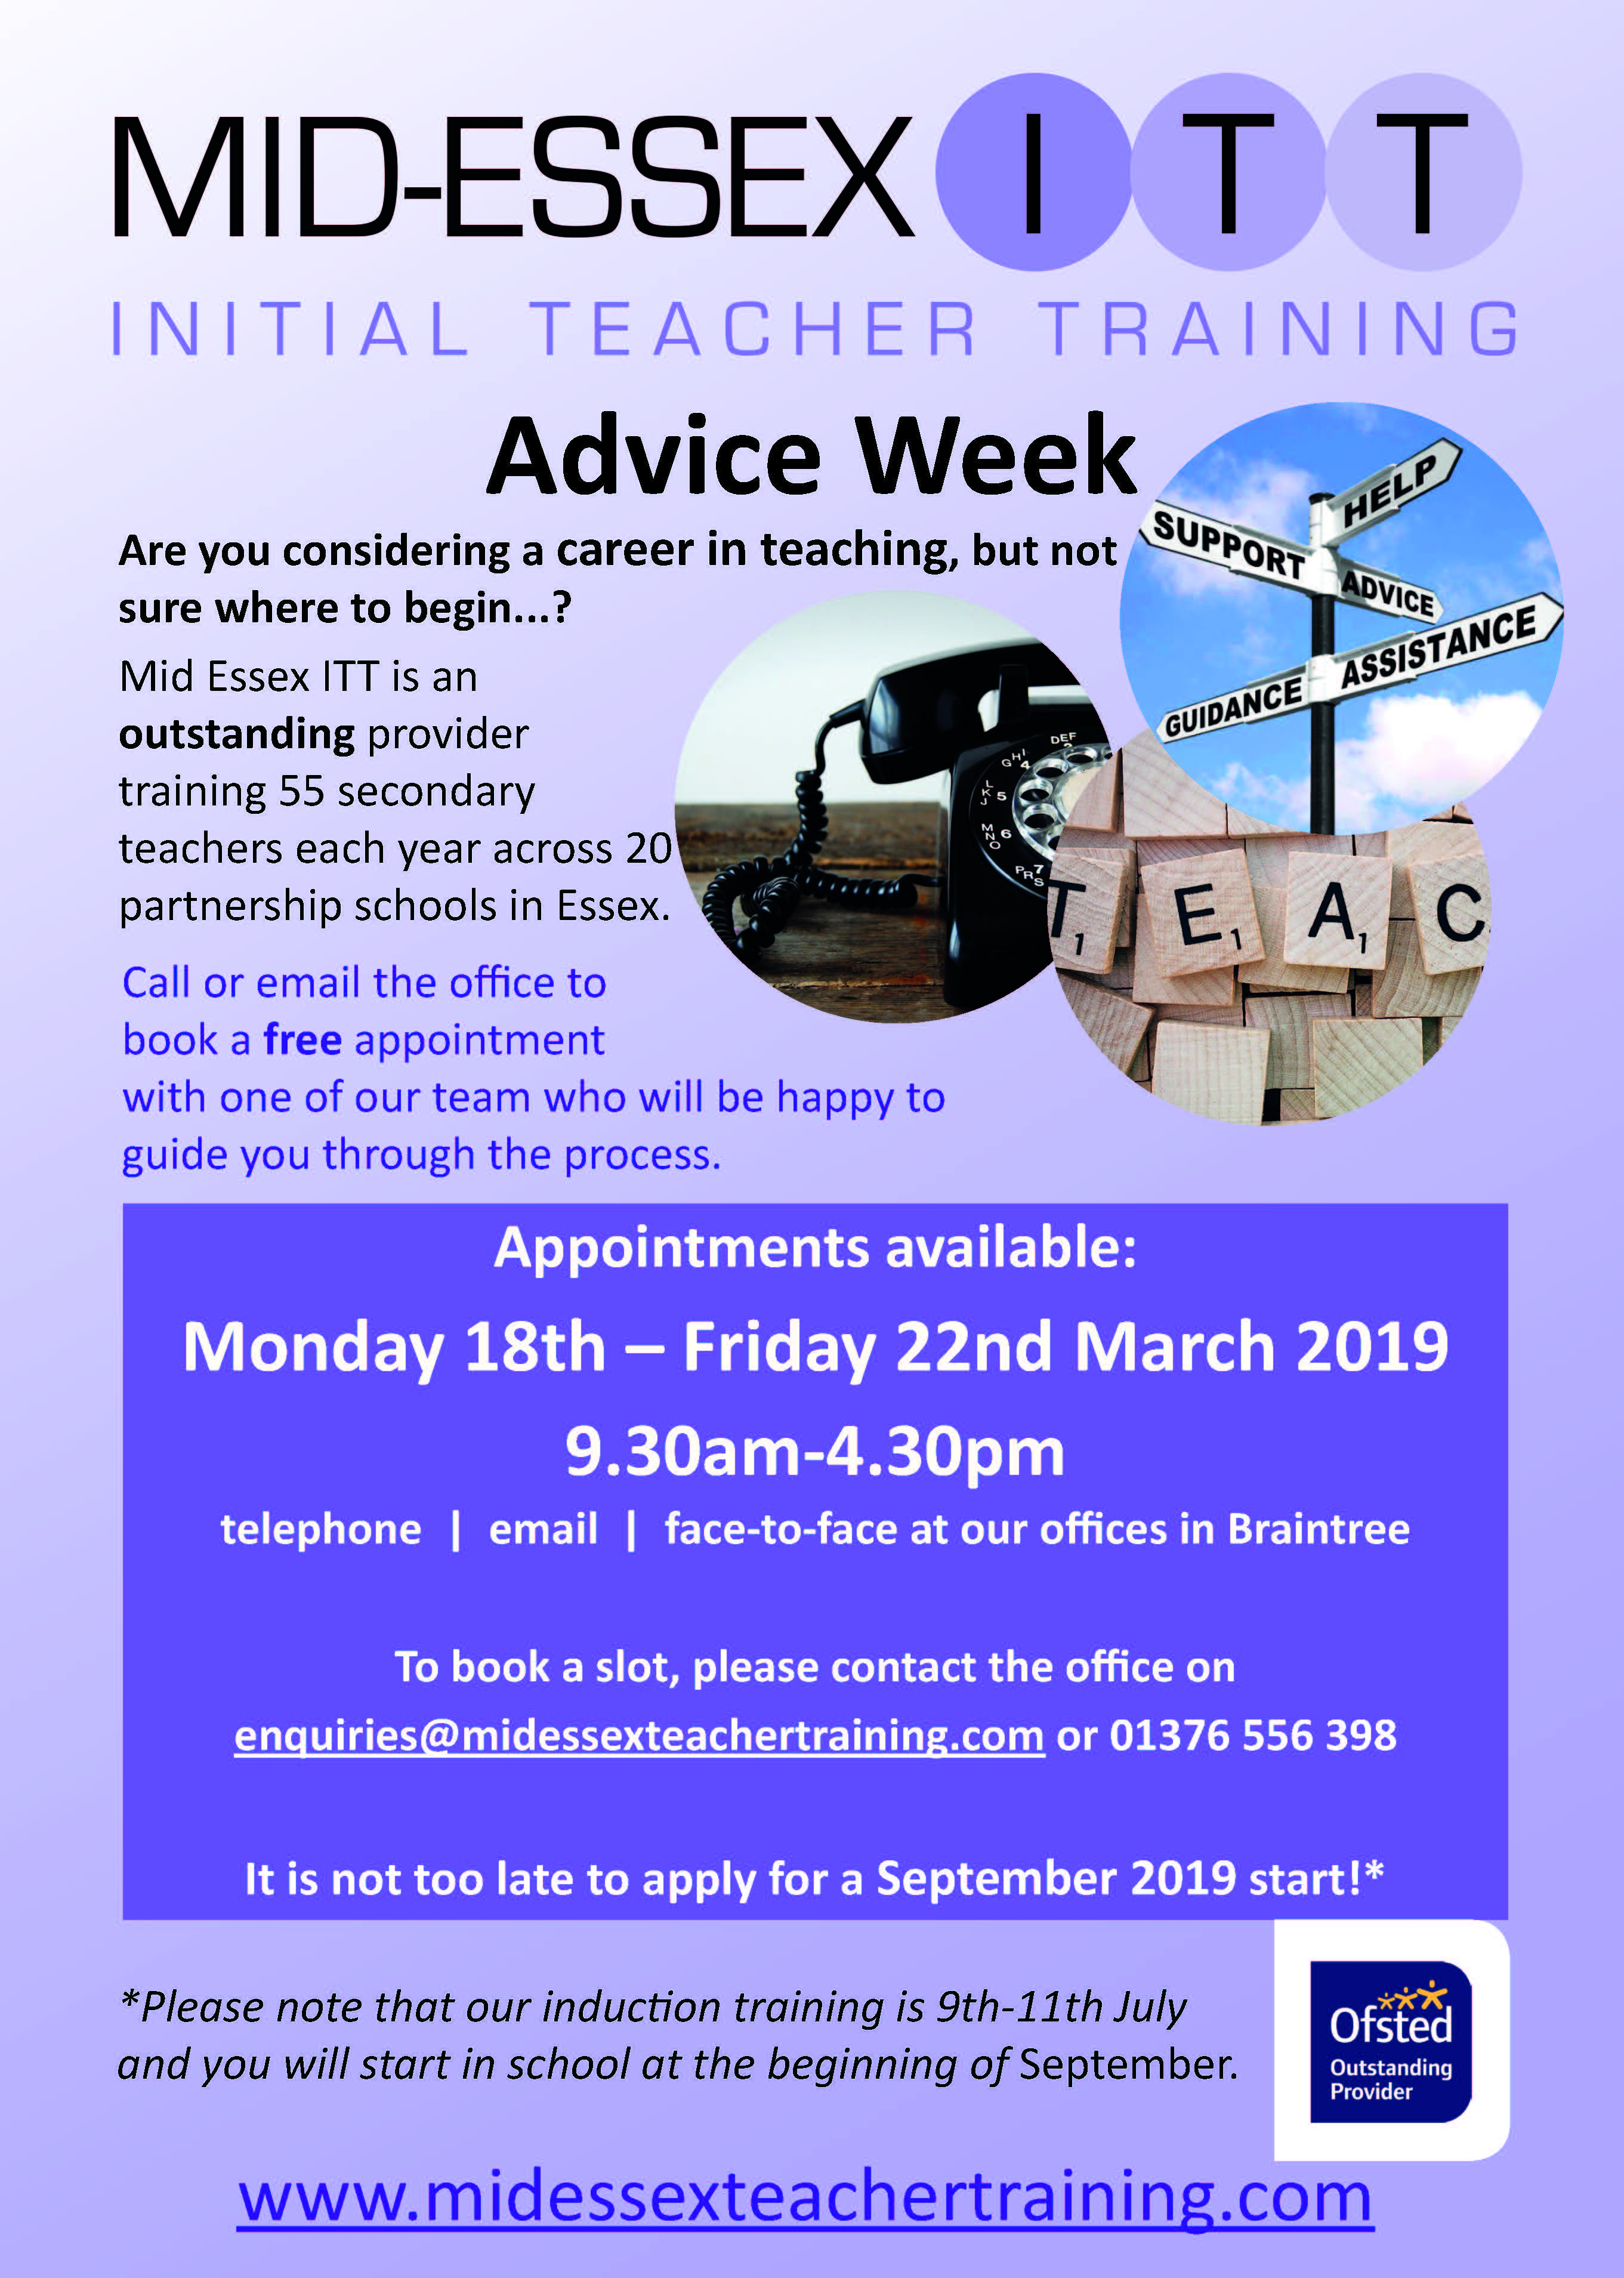 COMING SOON: Advice Week